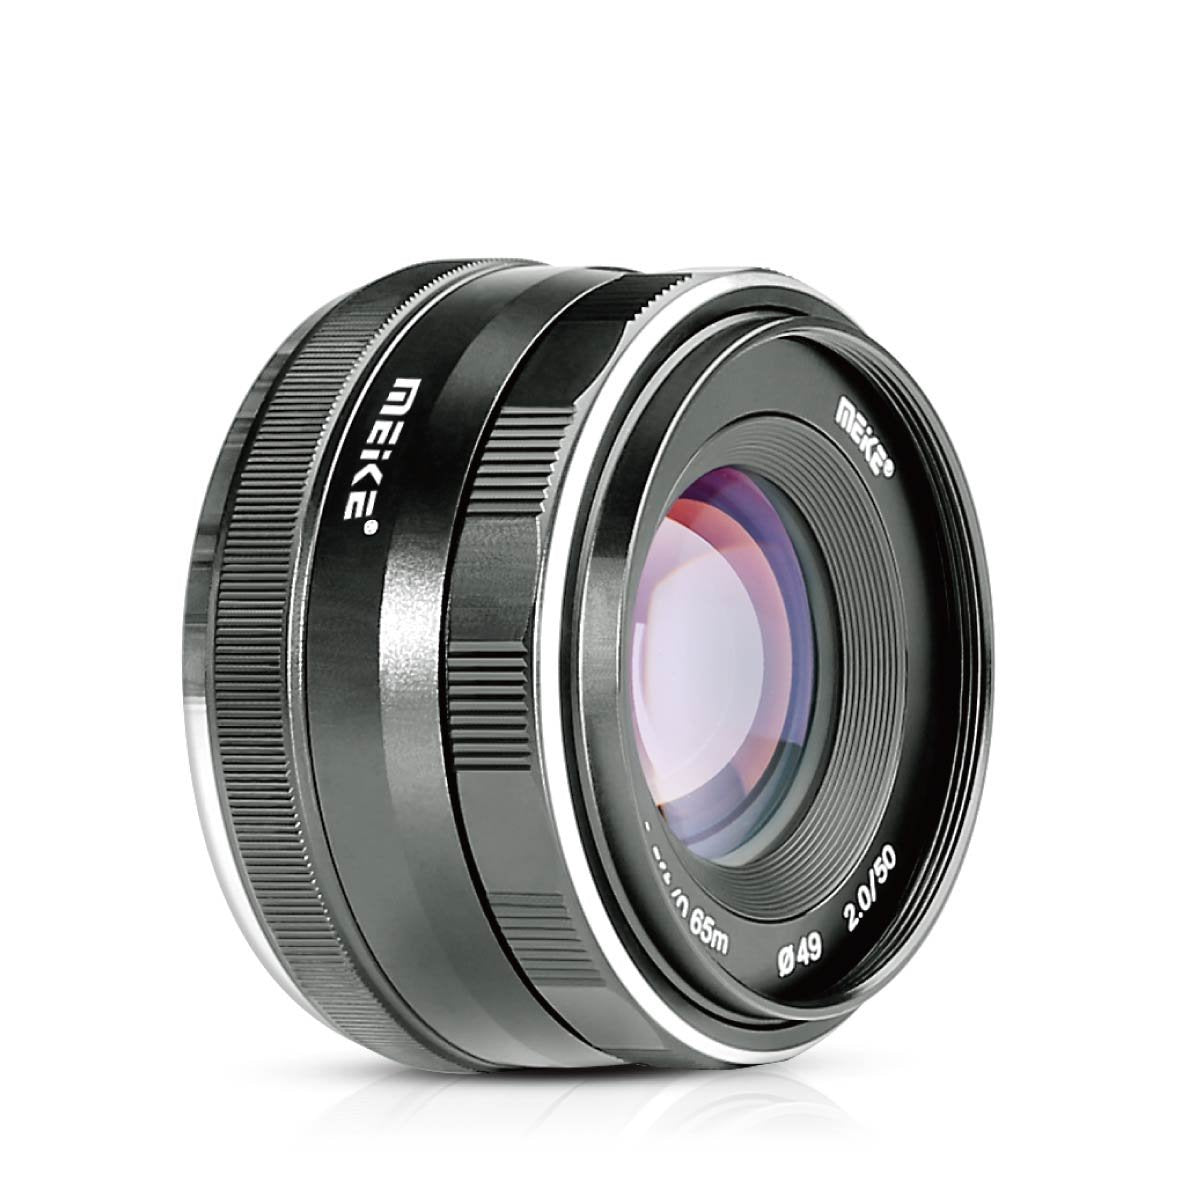 meike mk fx 50 2 0 50mm f 2 0 large aperture manual focus lens aps c rh fomito shop SB-900 vs SB-910 SB-900 vs SB-910